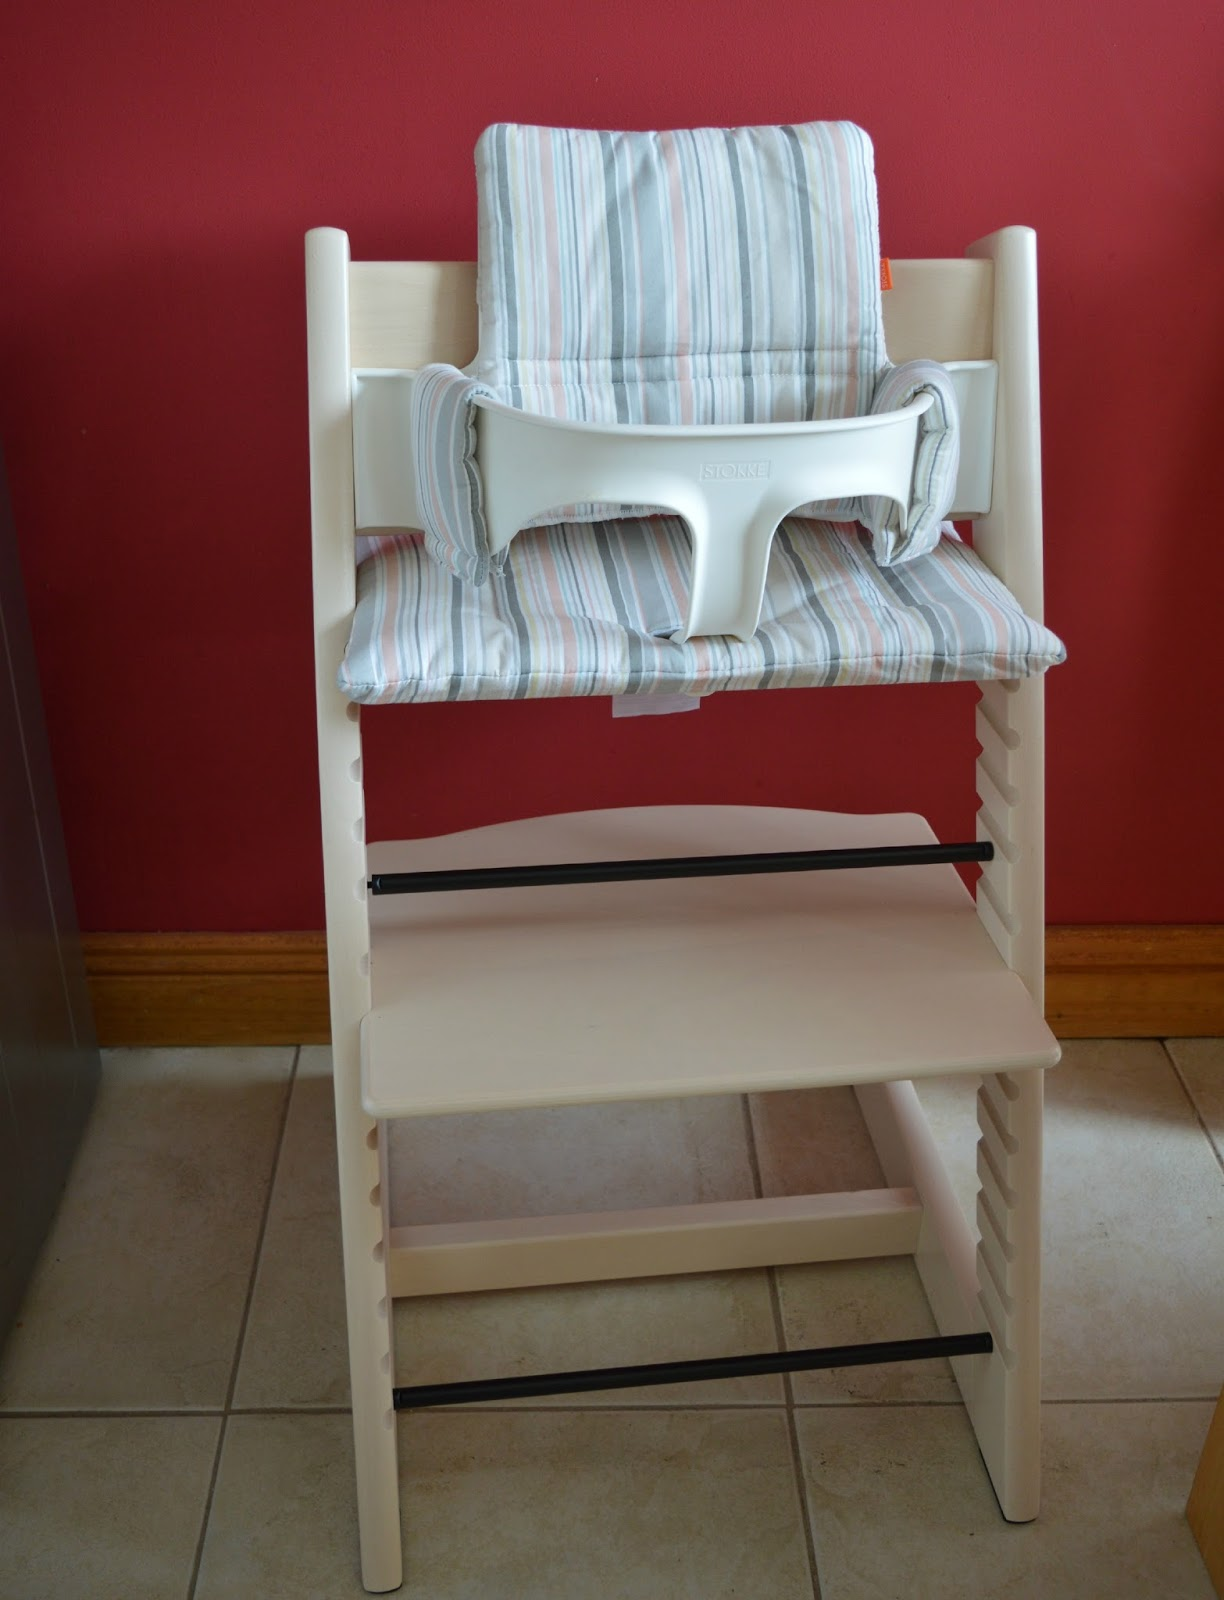 Stokke Tripp Trapp Chair Review ♥